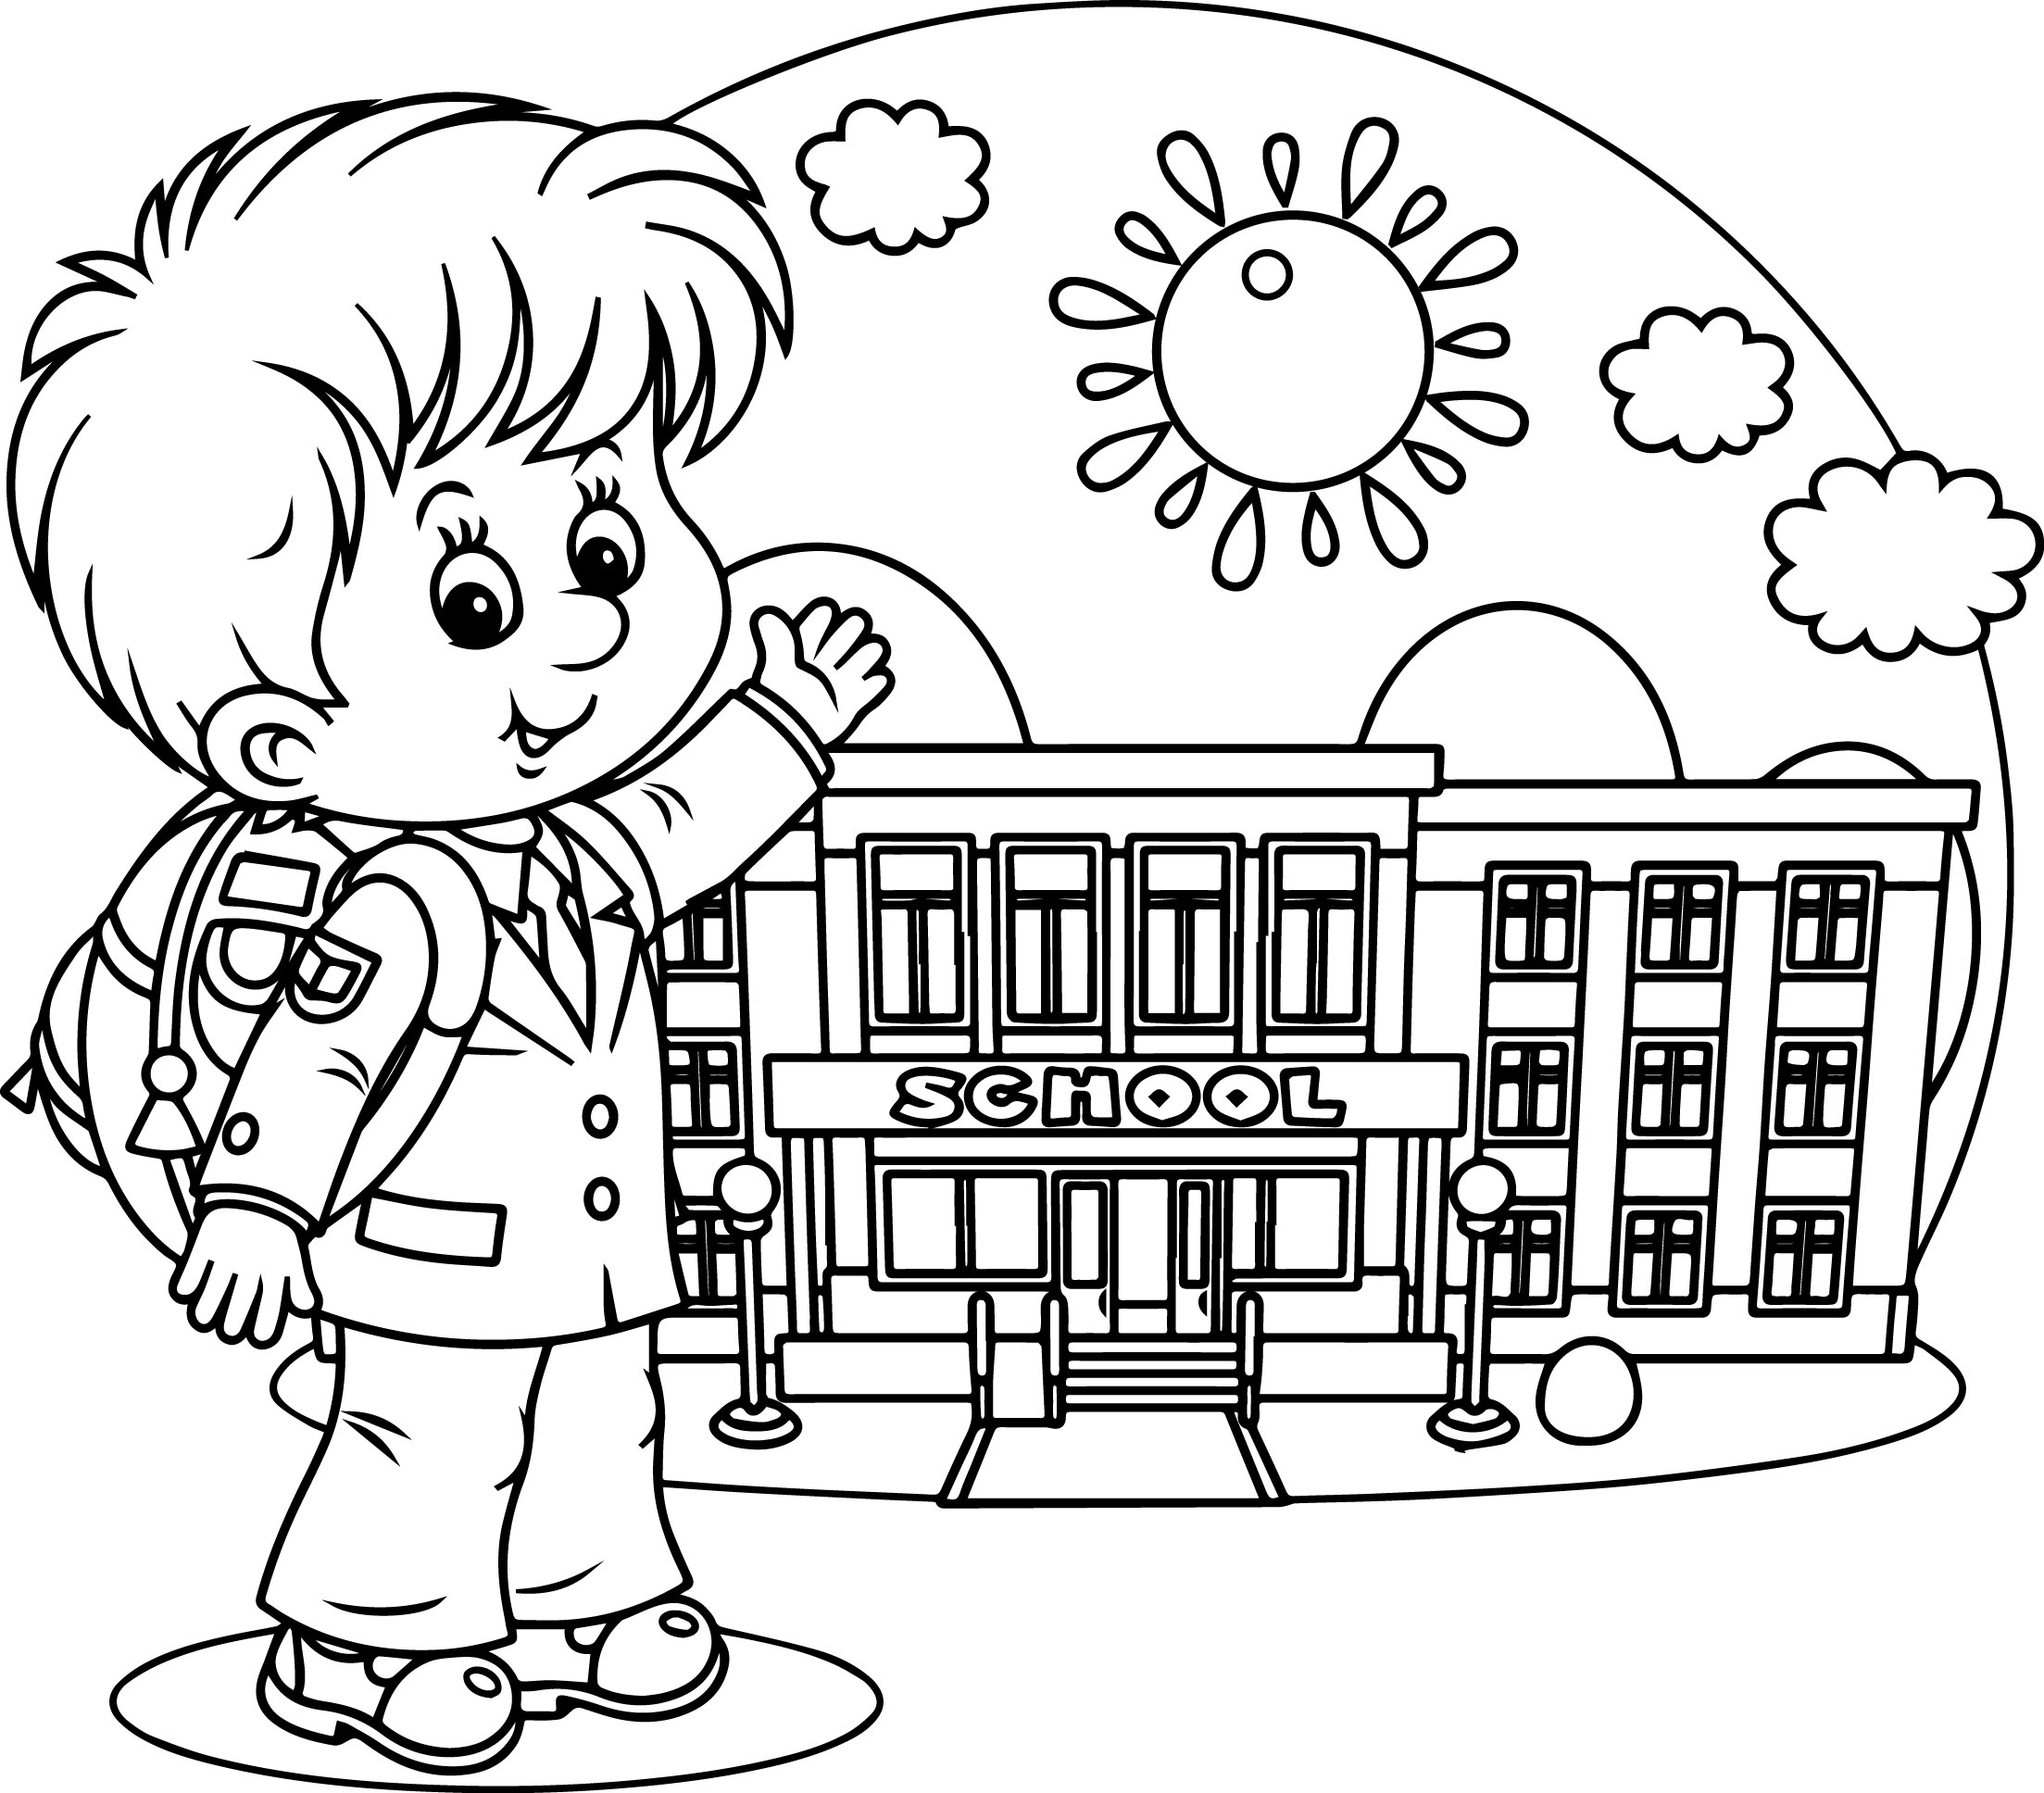 2207x1936 Coloring Pages For School Kids Preschool Funny Draw I On Middle